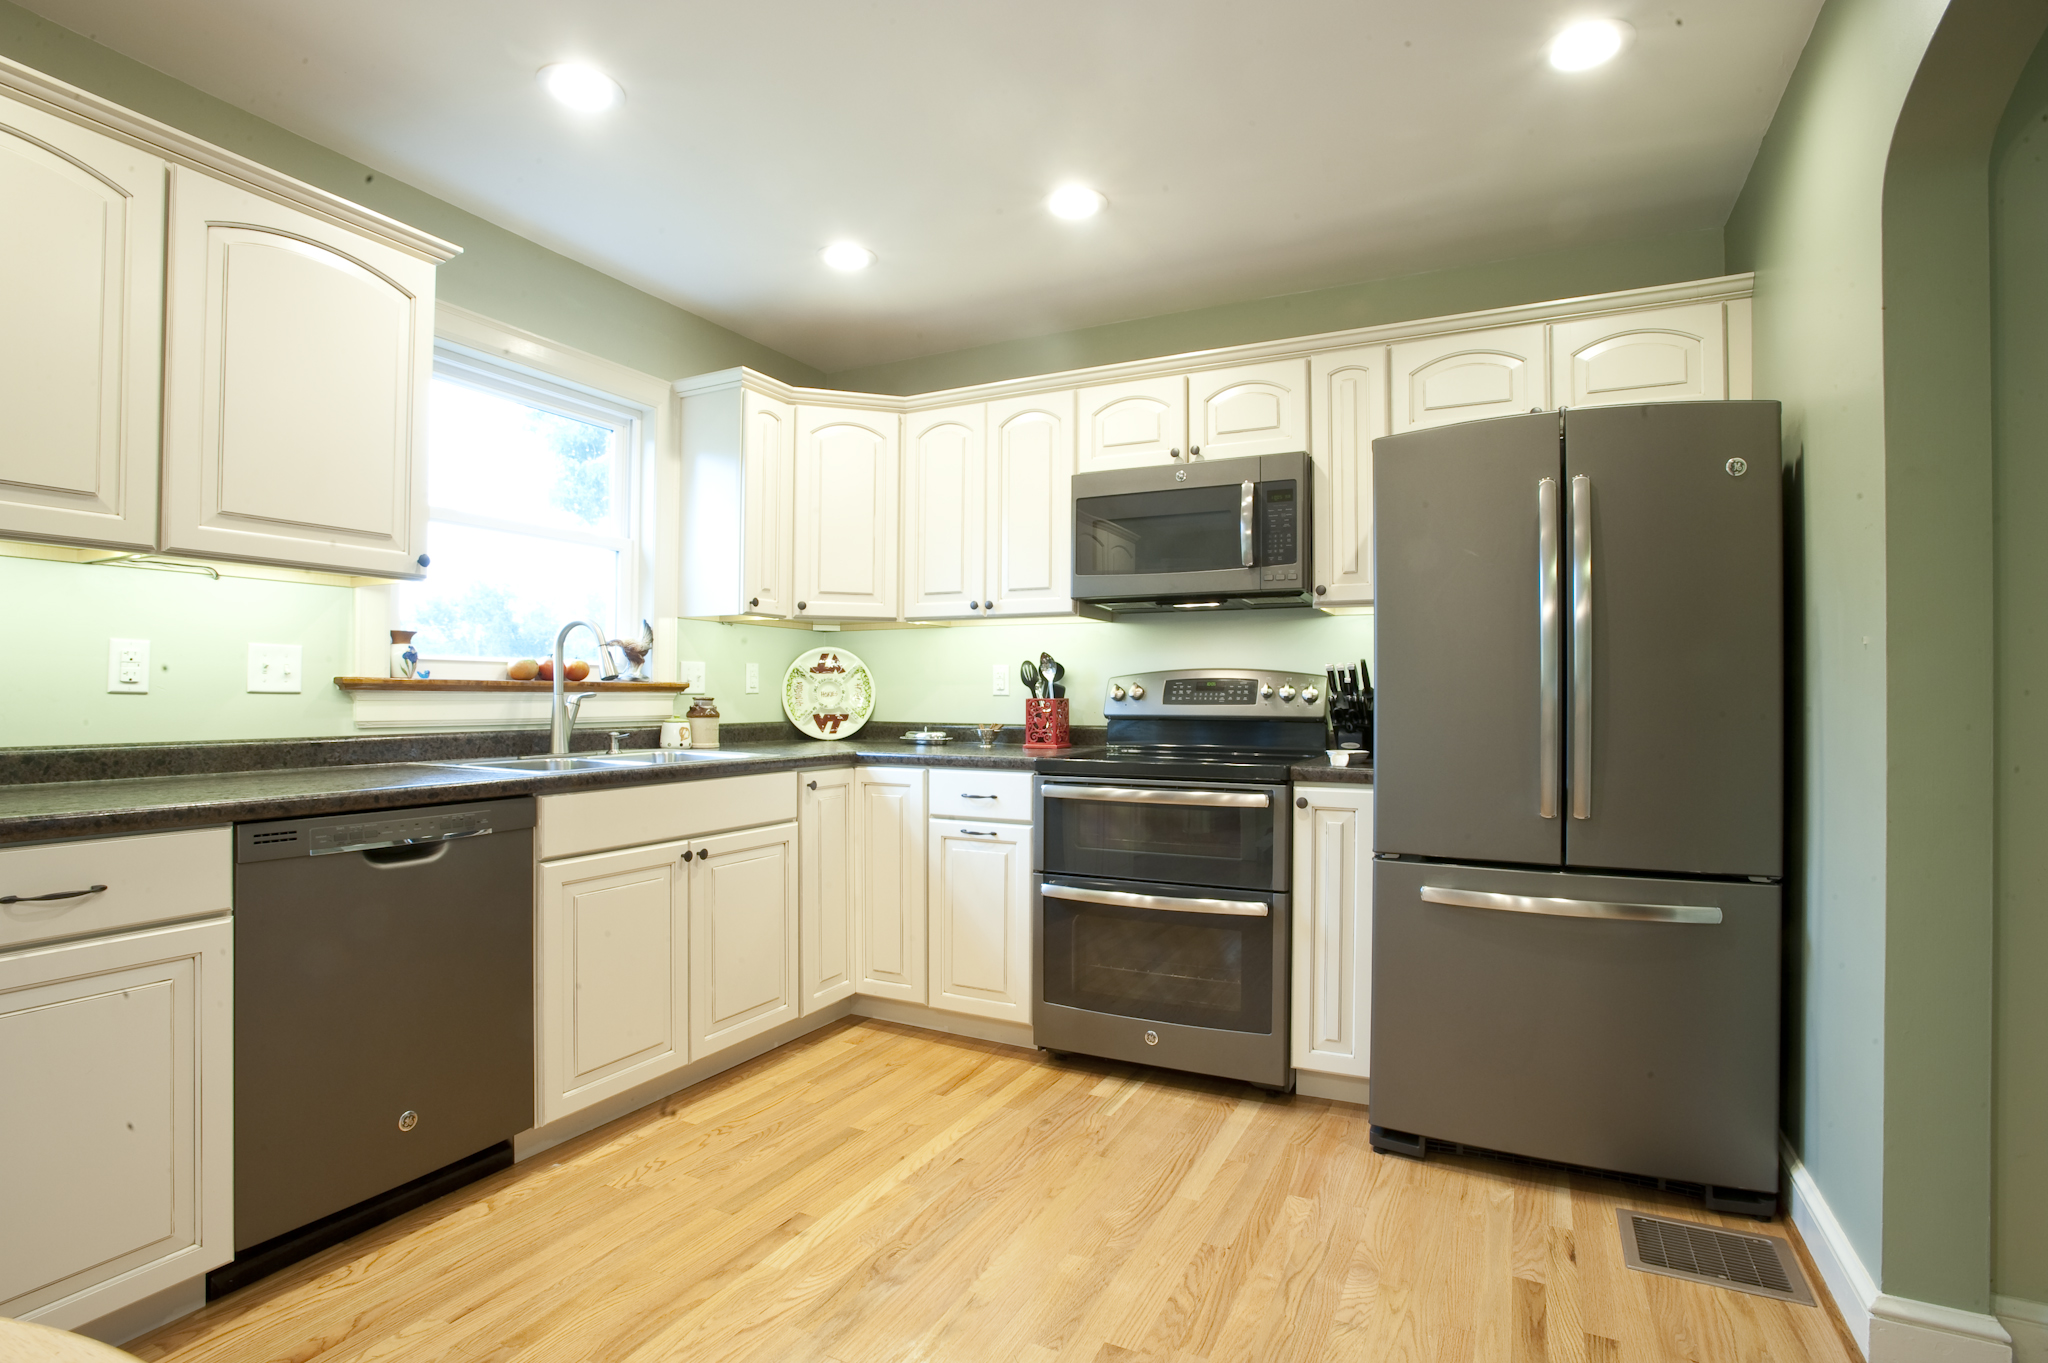 slate kitchen appliances farm sinks consumers go gray in a stylish waywith ge kitchens